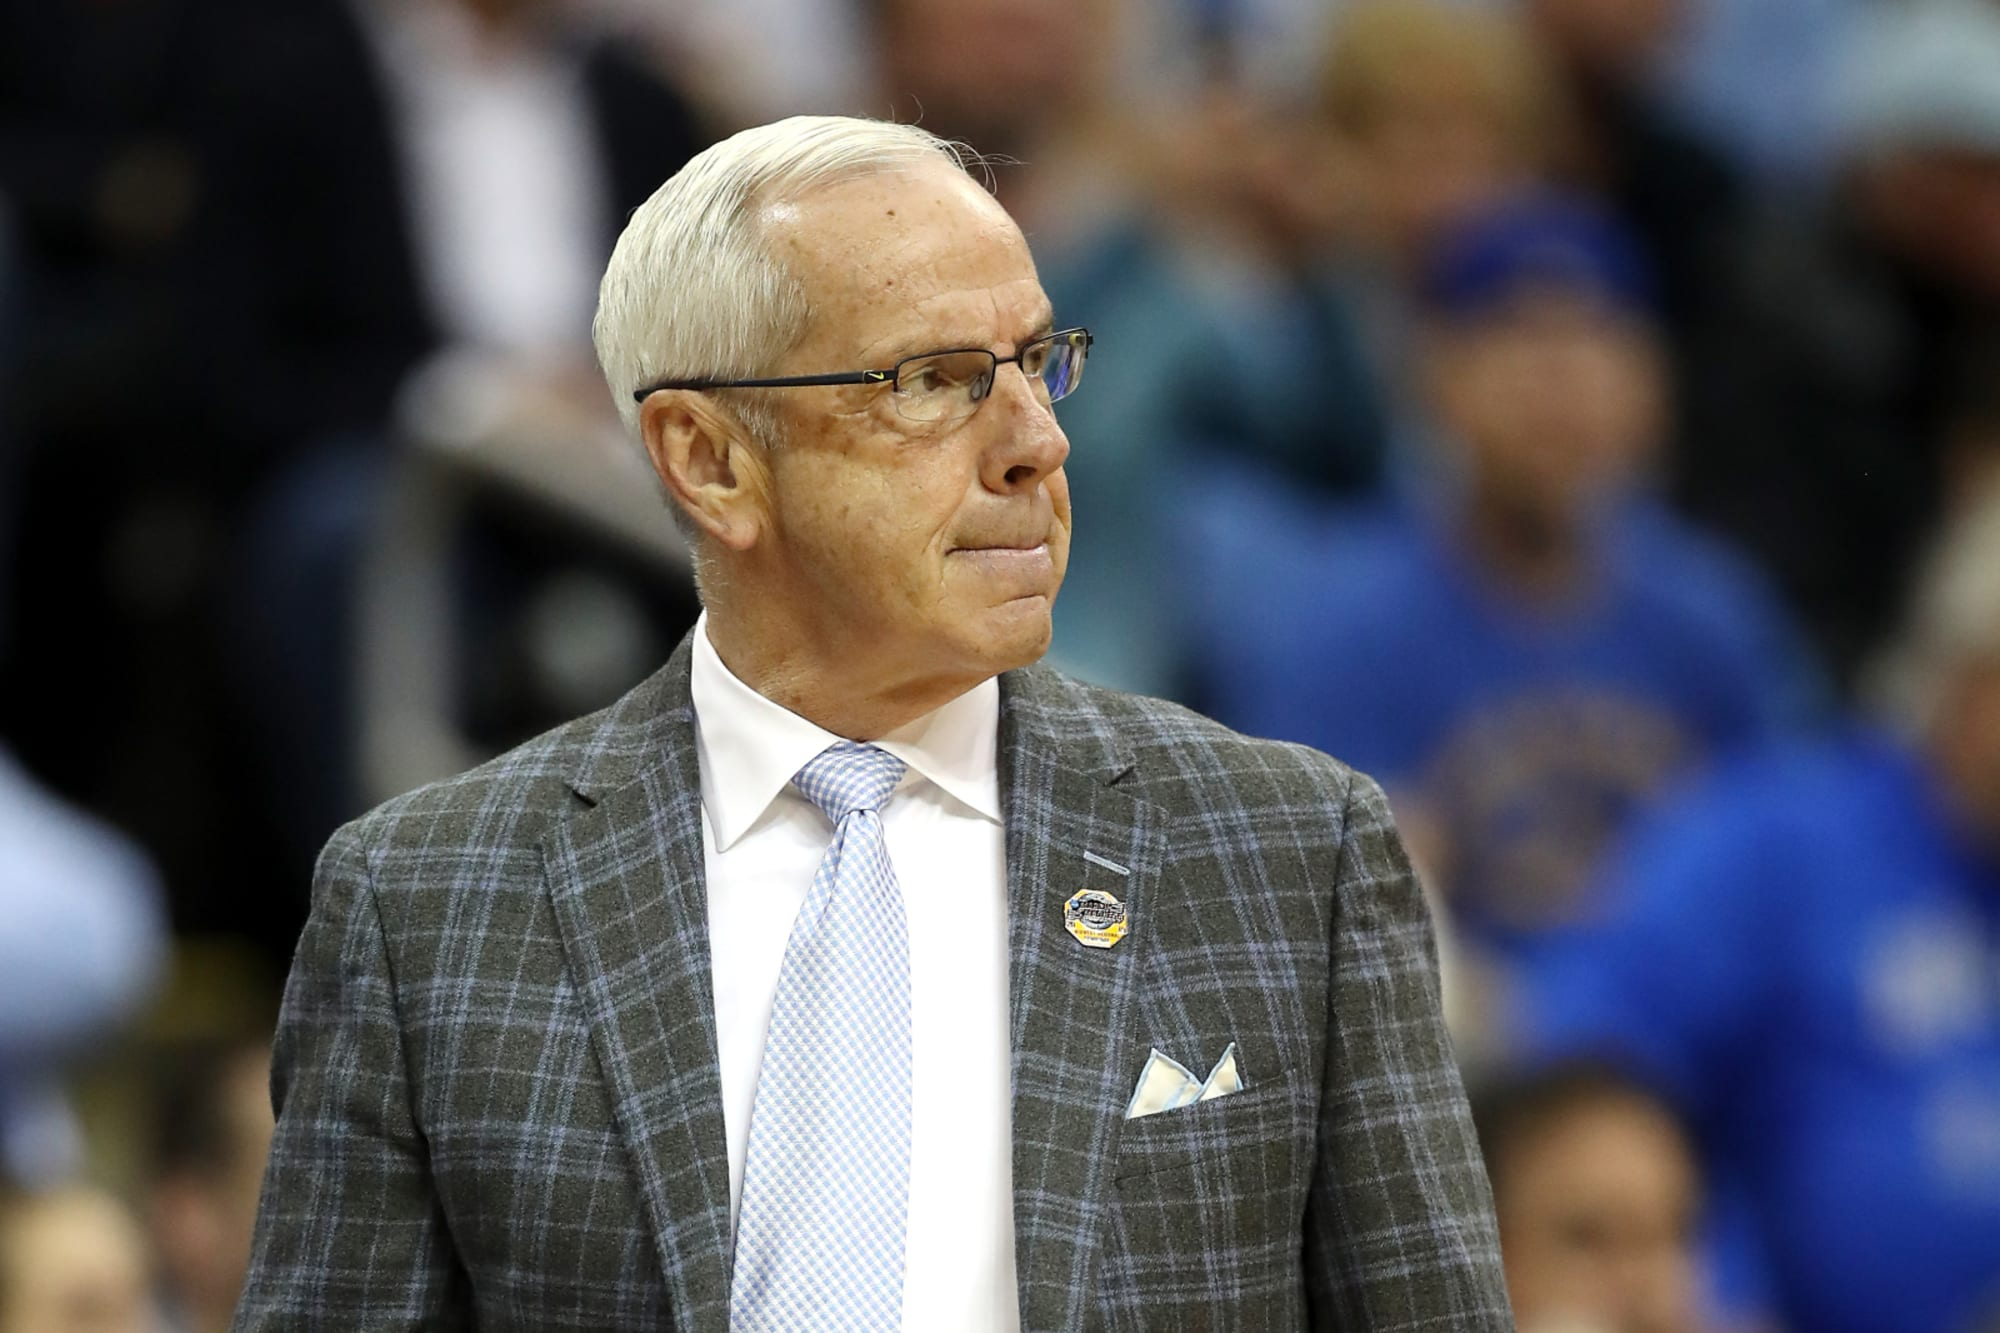 UNC Basketball: 5-star target got emotional with offer from Tar Heels